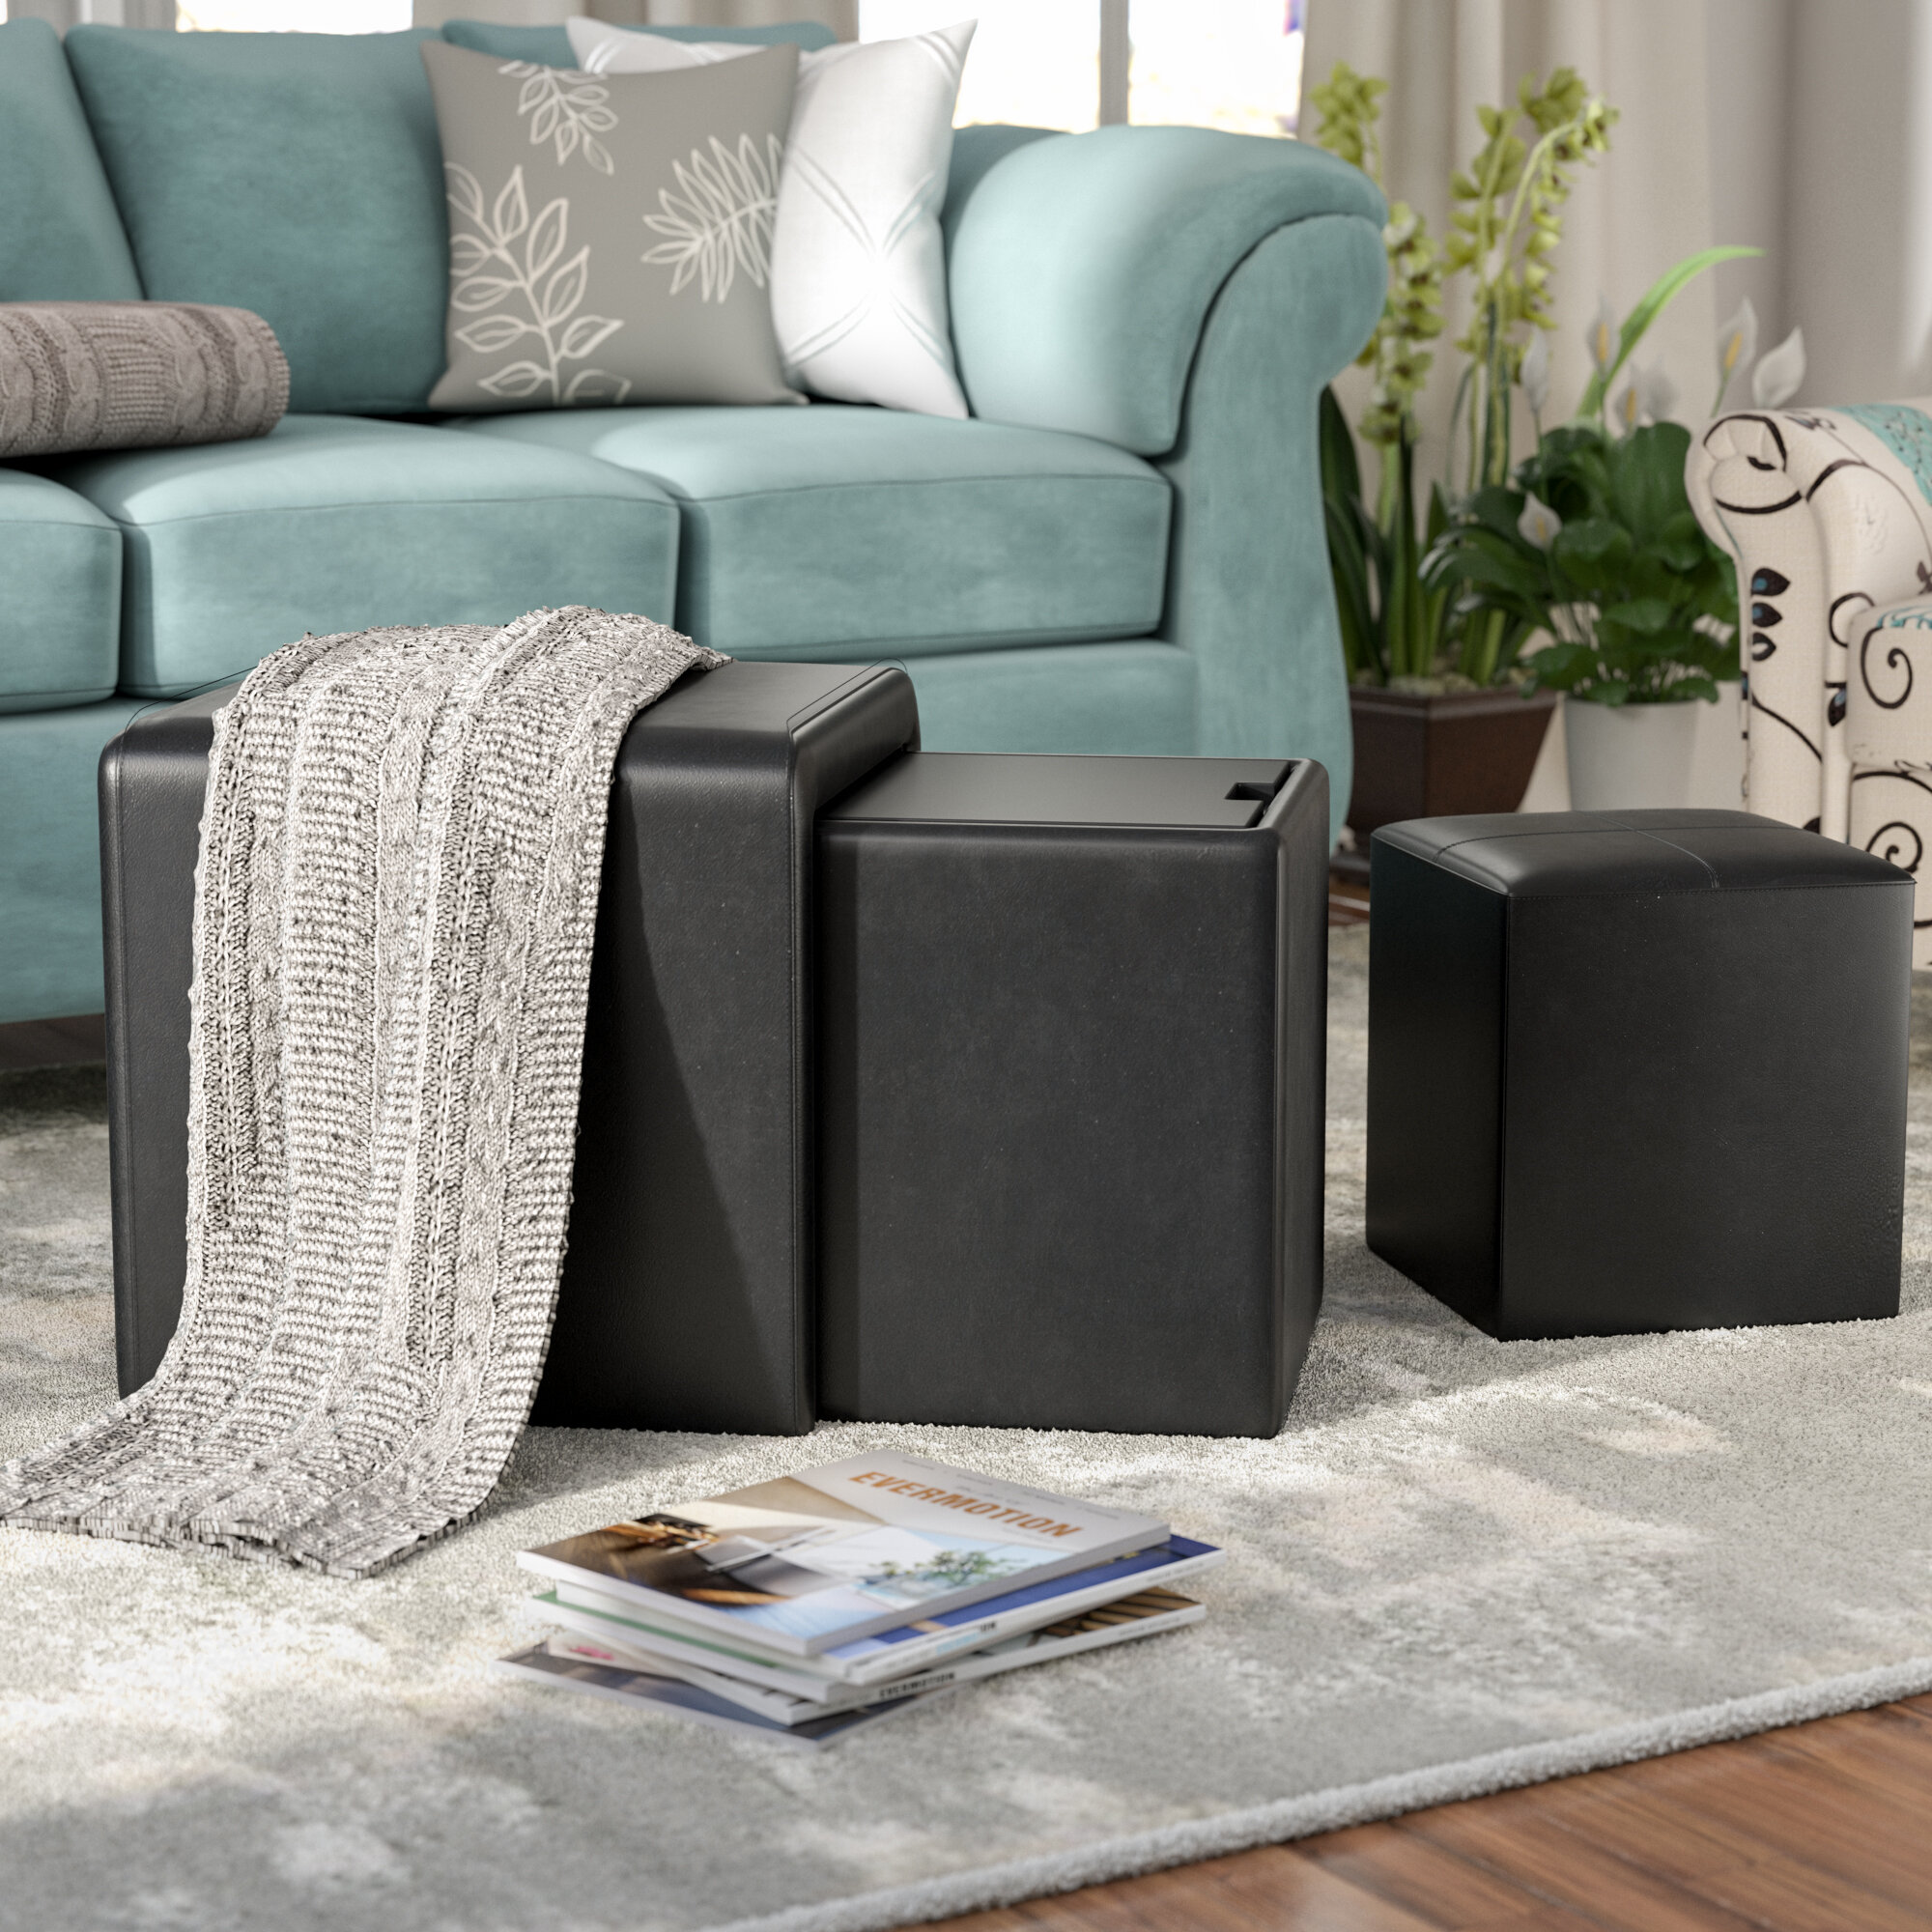 Delicieux Andover Mills Lamberth 4 Piece Multi Functional Storage Ottoman Set U0026  Reviews | Wayfair